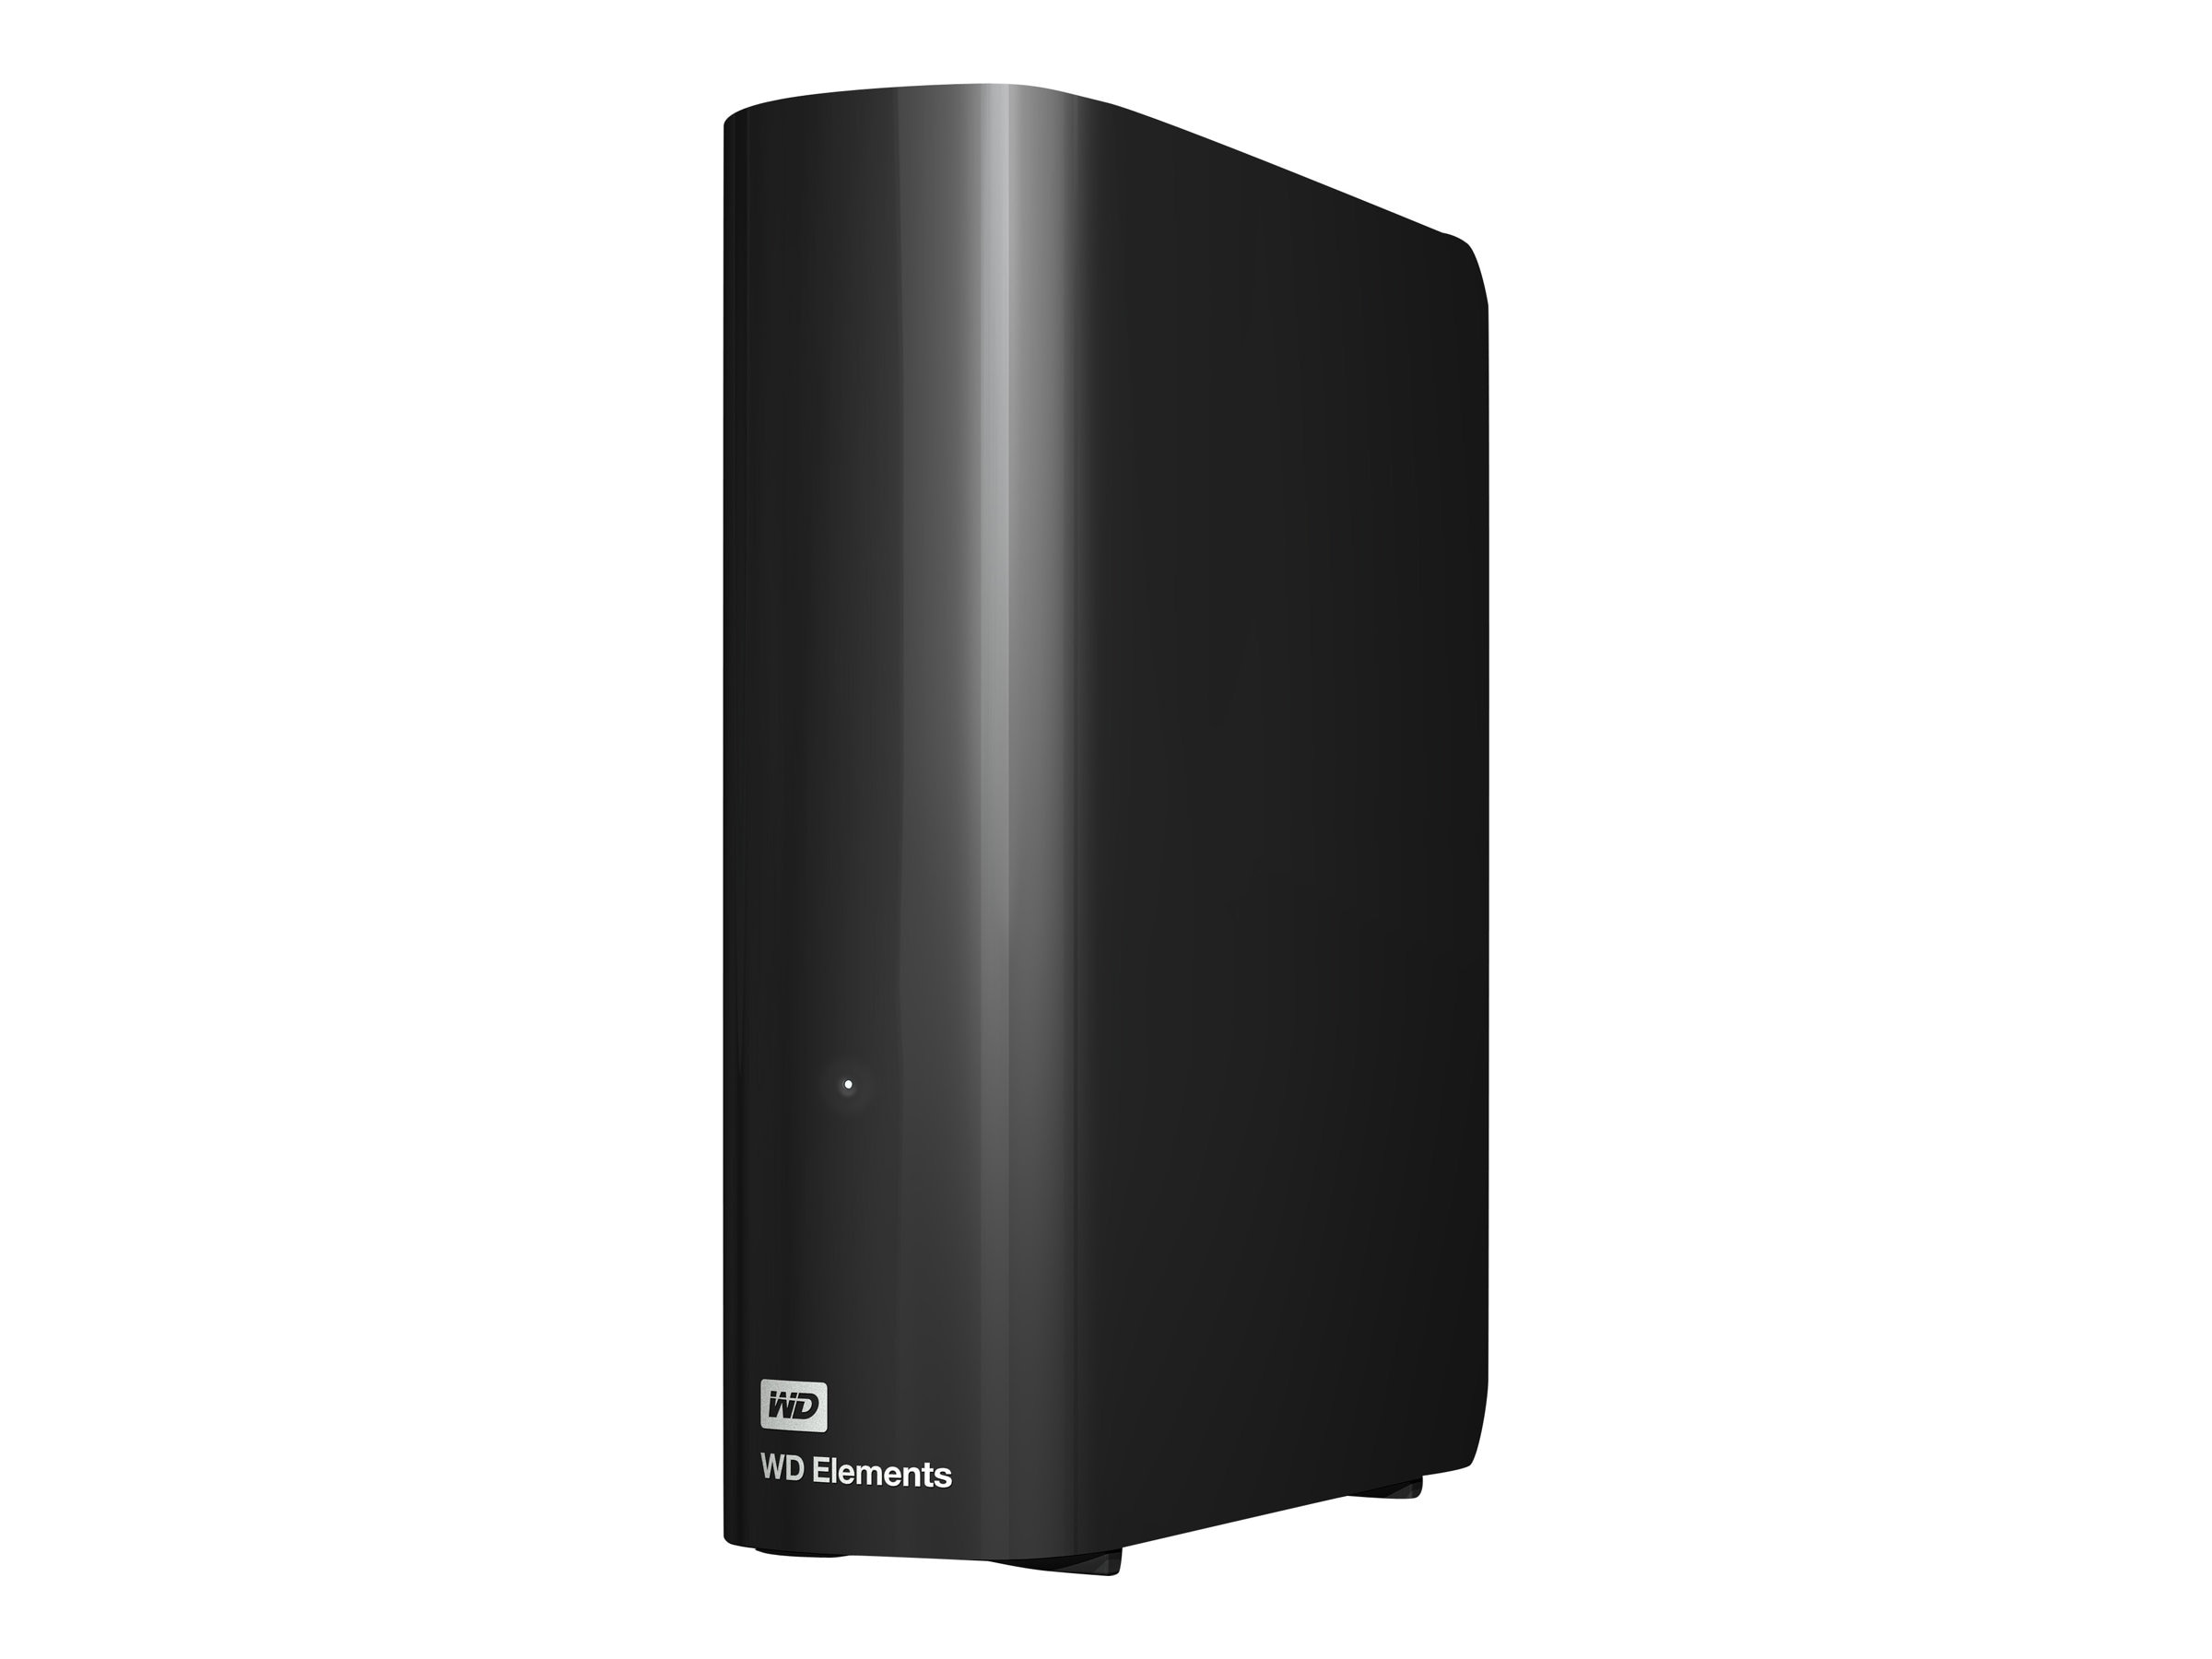 WD 4TB Elements Desktop USB 3.0 External Hard Drive, WDBWLG0040HBK-NESN, 17714632, Hard Drives - External